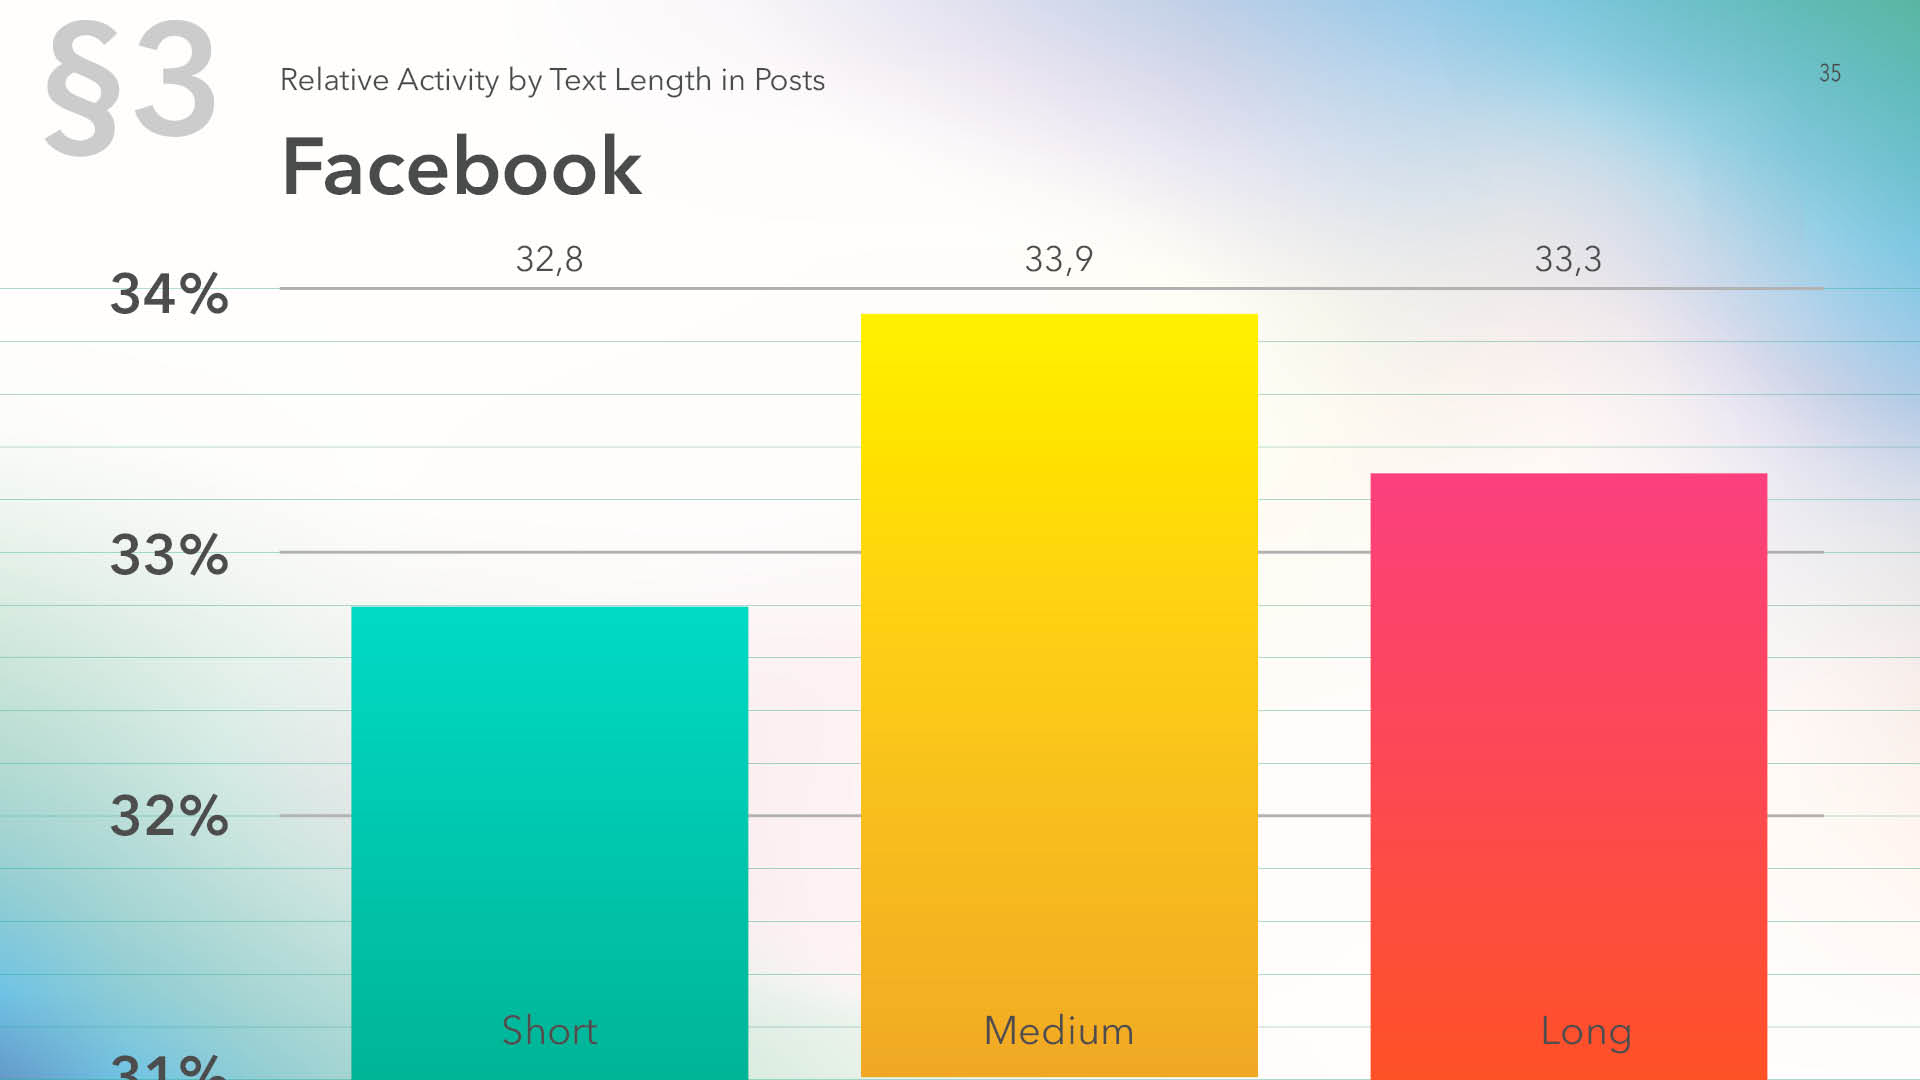 Relative activity on Facebook by text length in posts, 2019